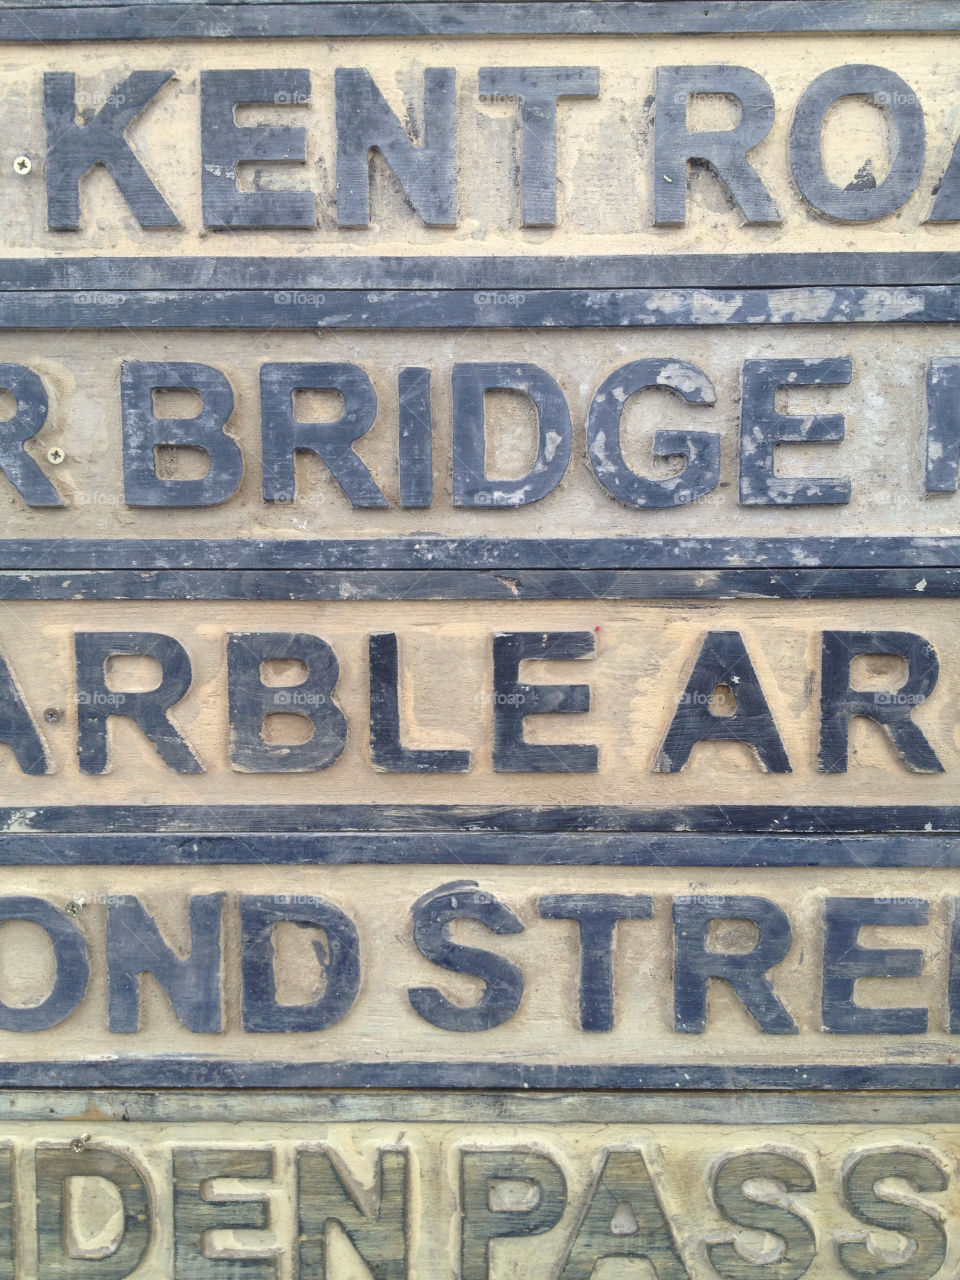 streets street signs street names tower bridge road by alexchappel